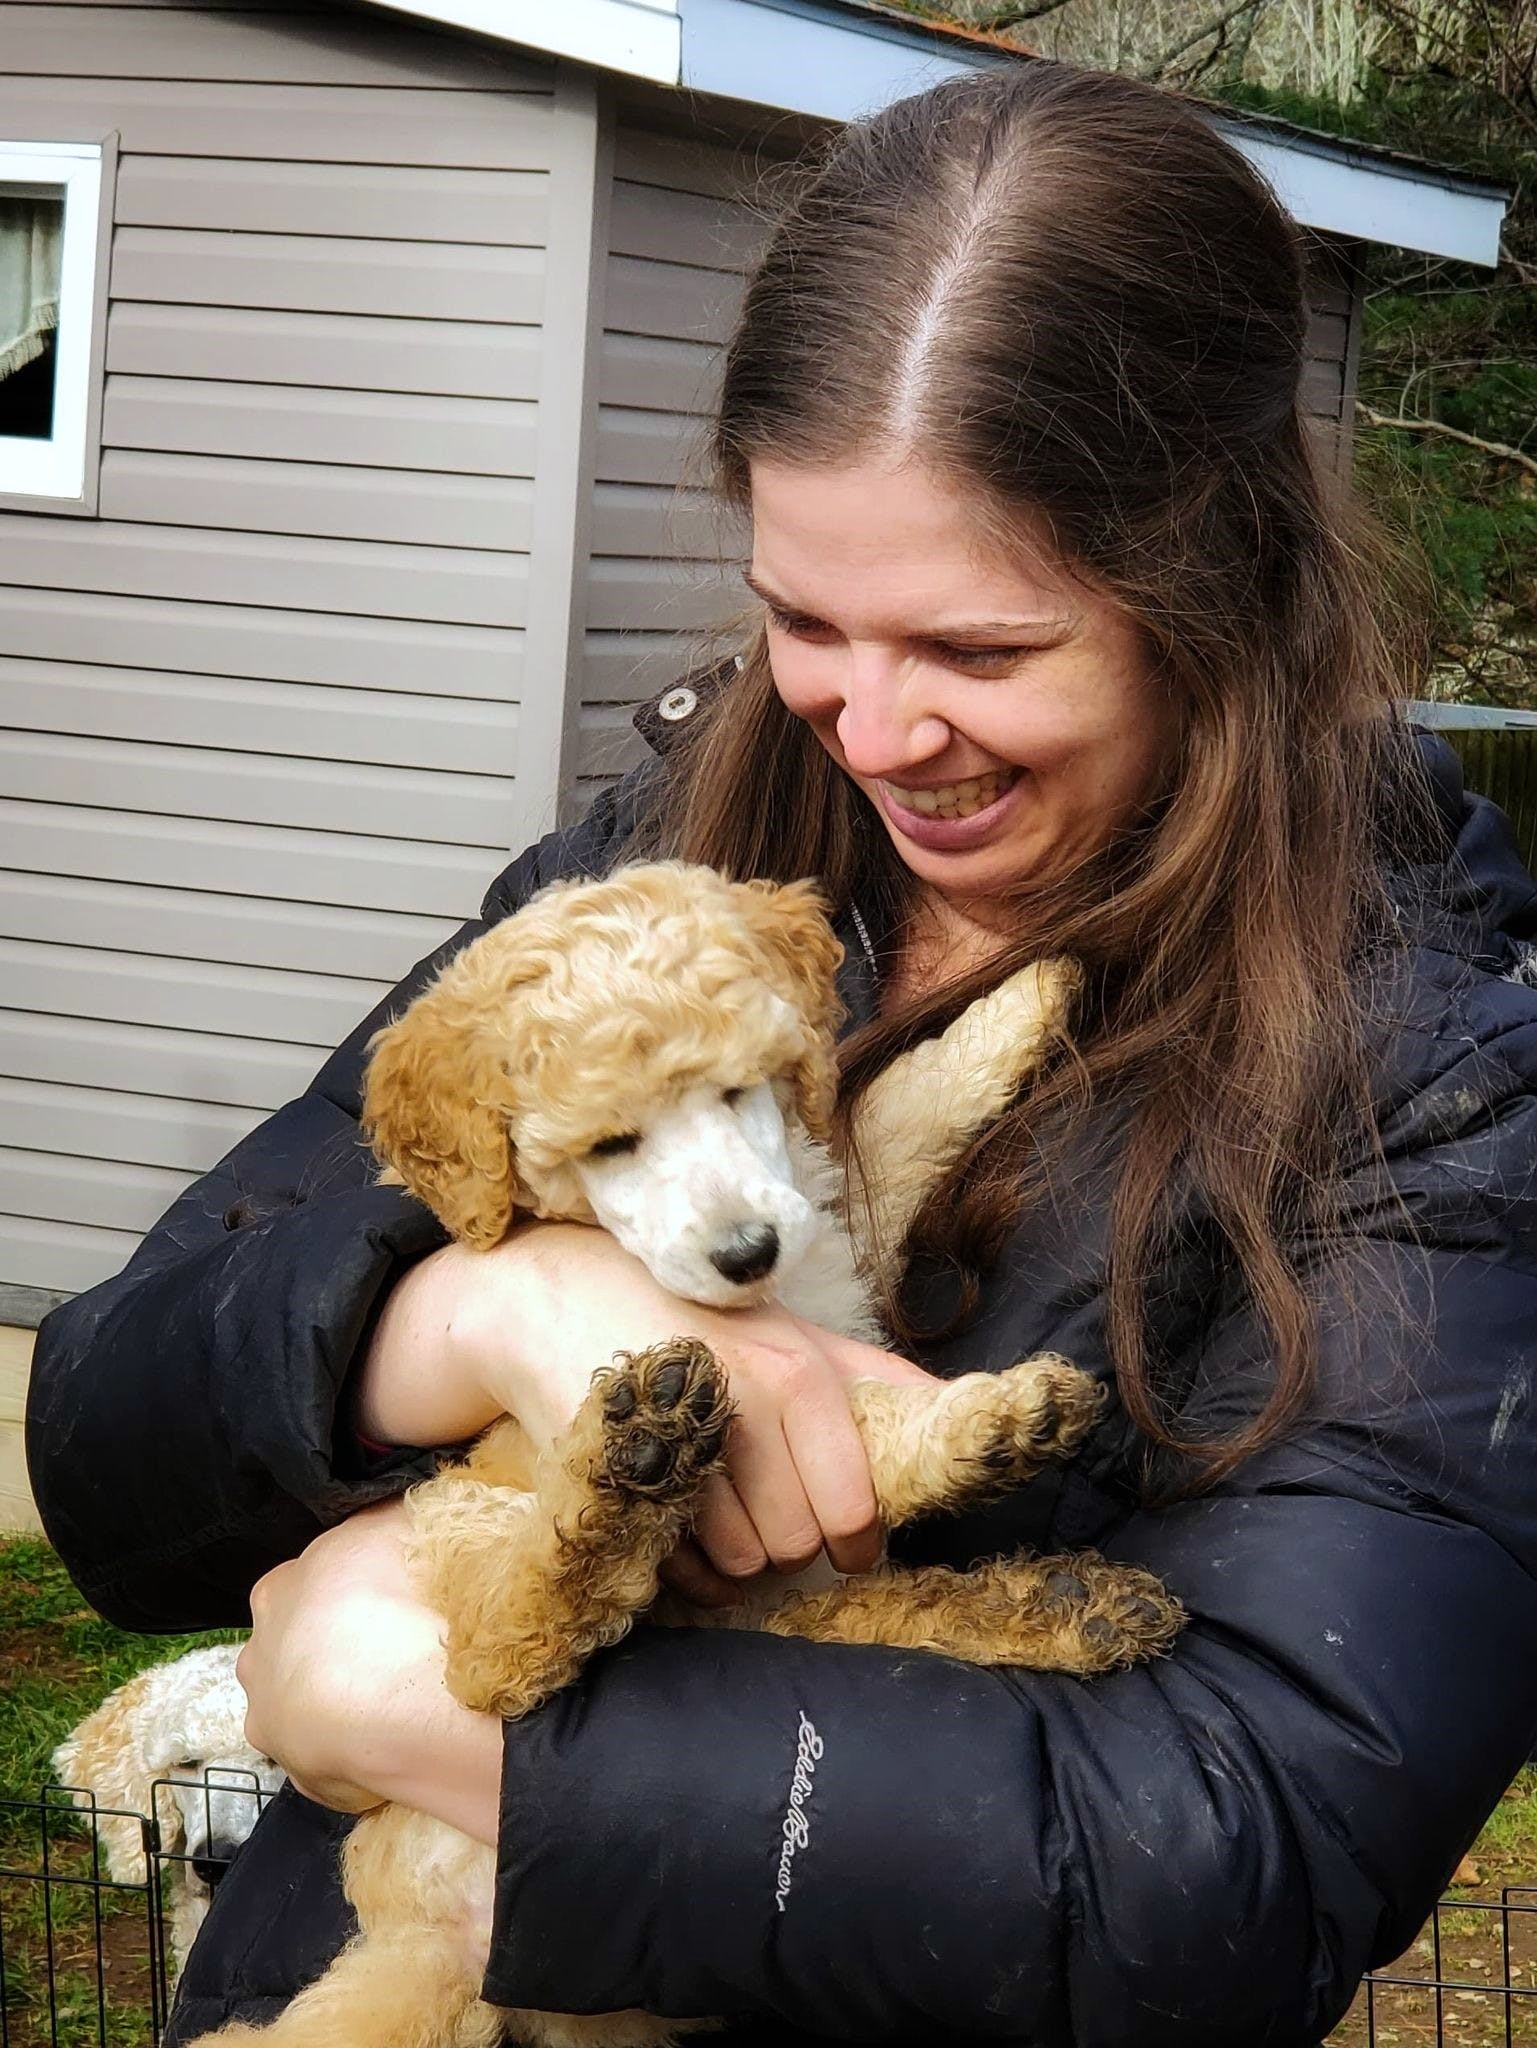 """It's tick season once again, which means people should be on the lookout for those pesky annoyances, whether it's to protect your pets or yourself. Michelle Proulx, seen here with her dog Sunshine, says ticks had never been a concern for her until the young pup had """"six or seven"""" attached one day. The ticks were sent away to be tested, and came back positive for Lyme disease. Fortunately, Sunshine received antibiotics and did not suffer from any symptoms."""